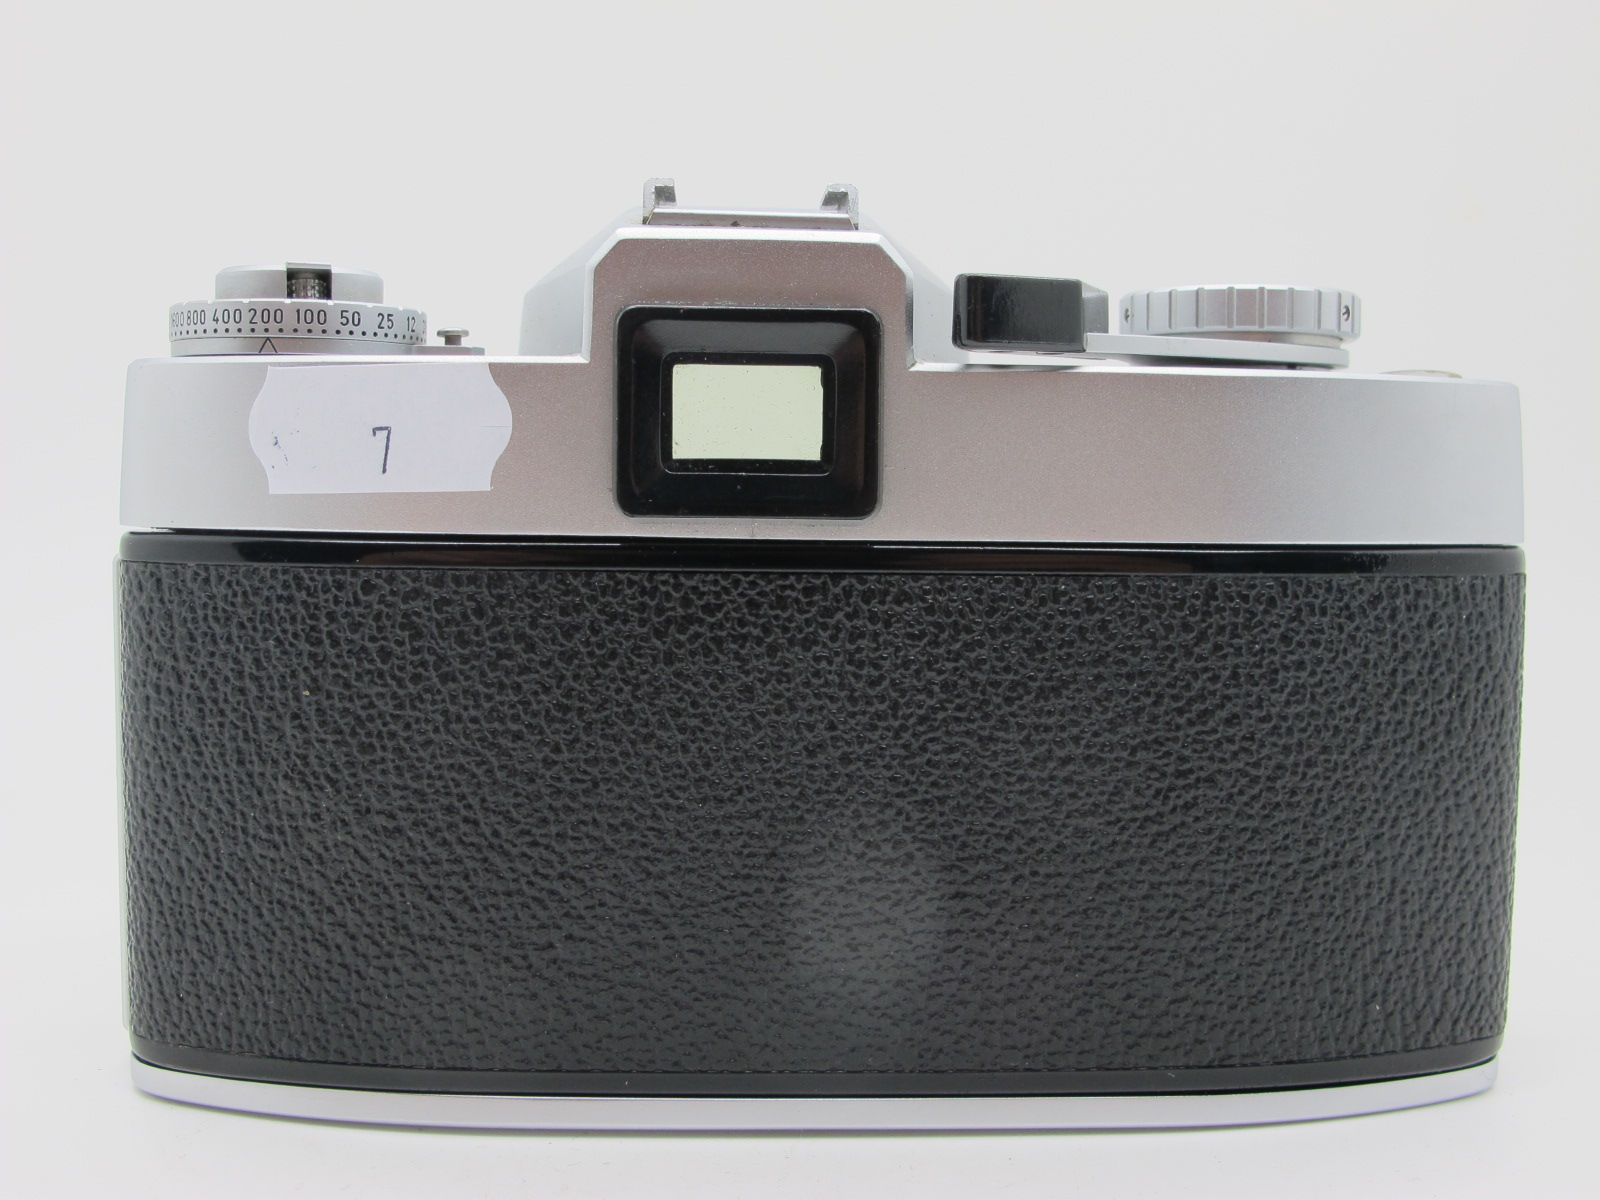 Leicaflex Manual Camera, with Leitz Wetzlar Summicron - R 1:2/50 lens in a black case. - Image 5 of 8